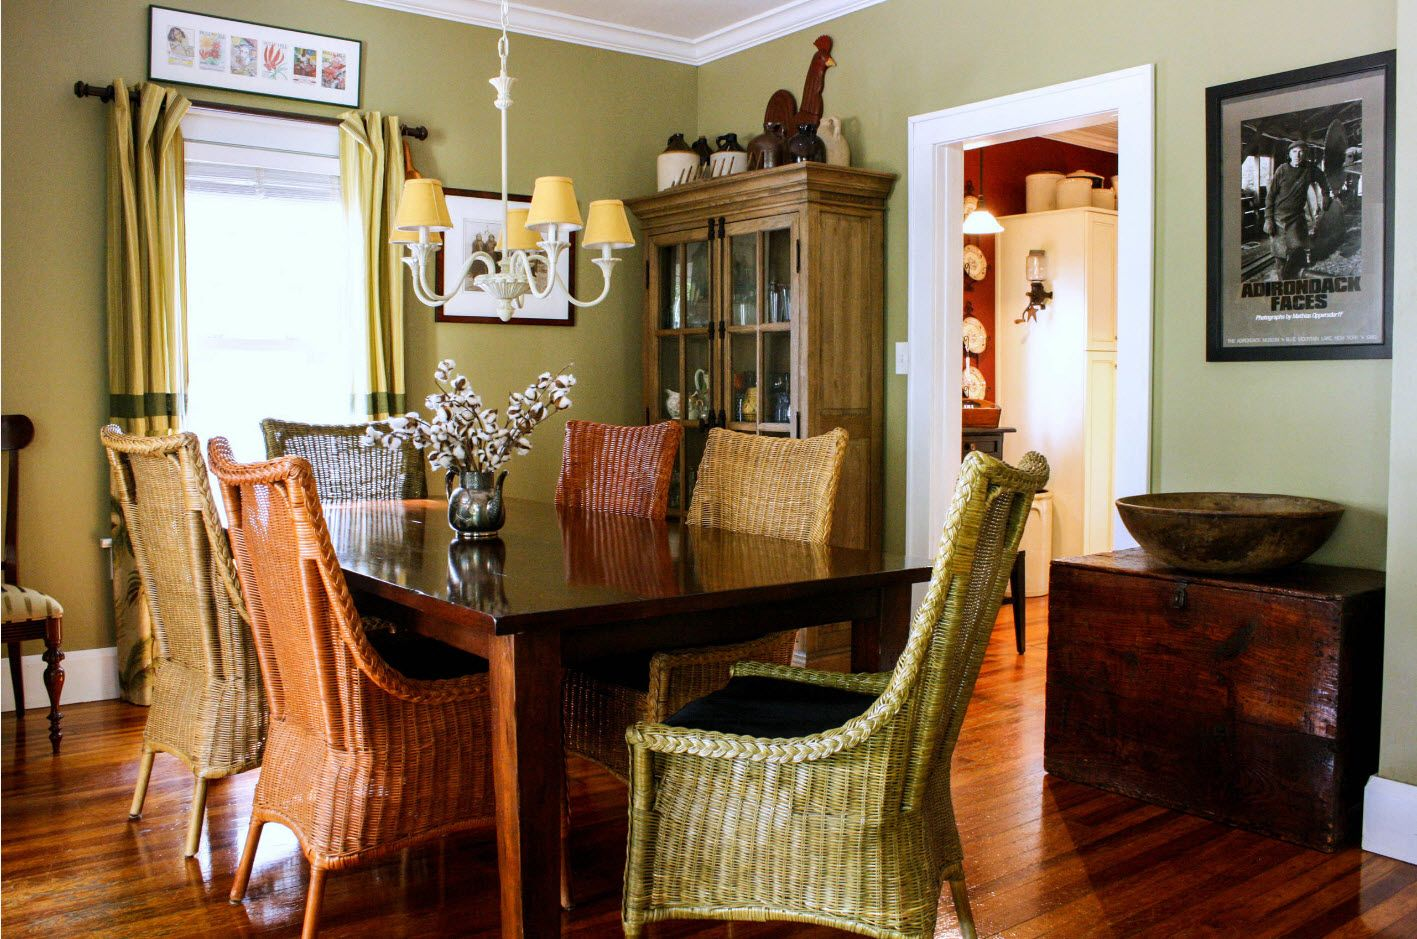 Naturalistic color set for rustic atmosphere of the dining